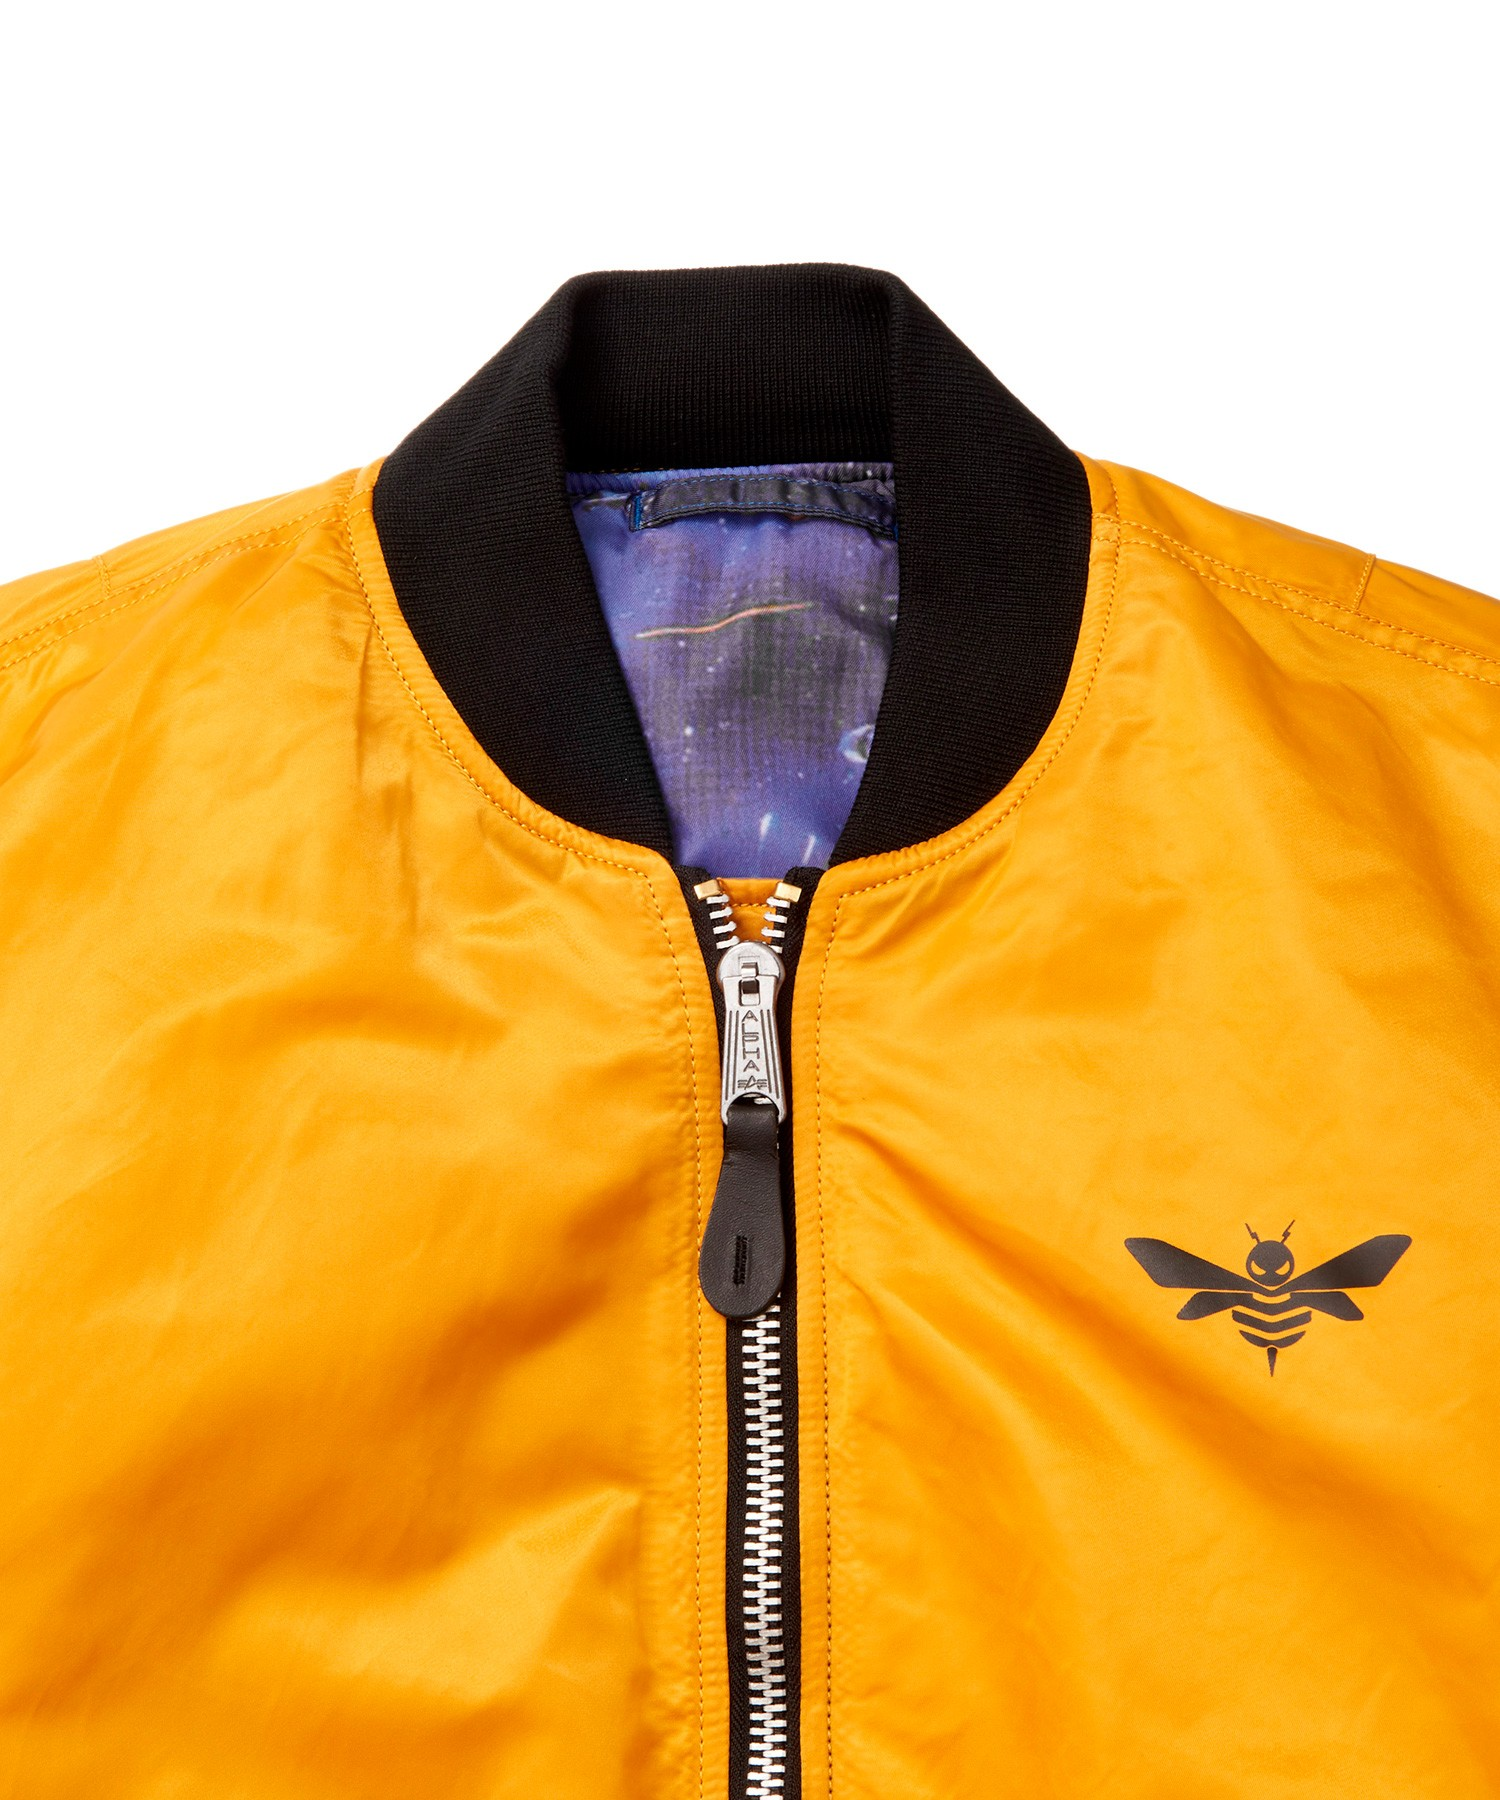 Transformers News: More Images of Alpha MA-1 Transformers Bumblebee Reversible Jacket